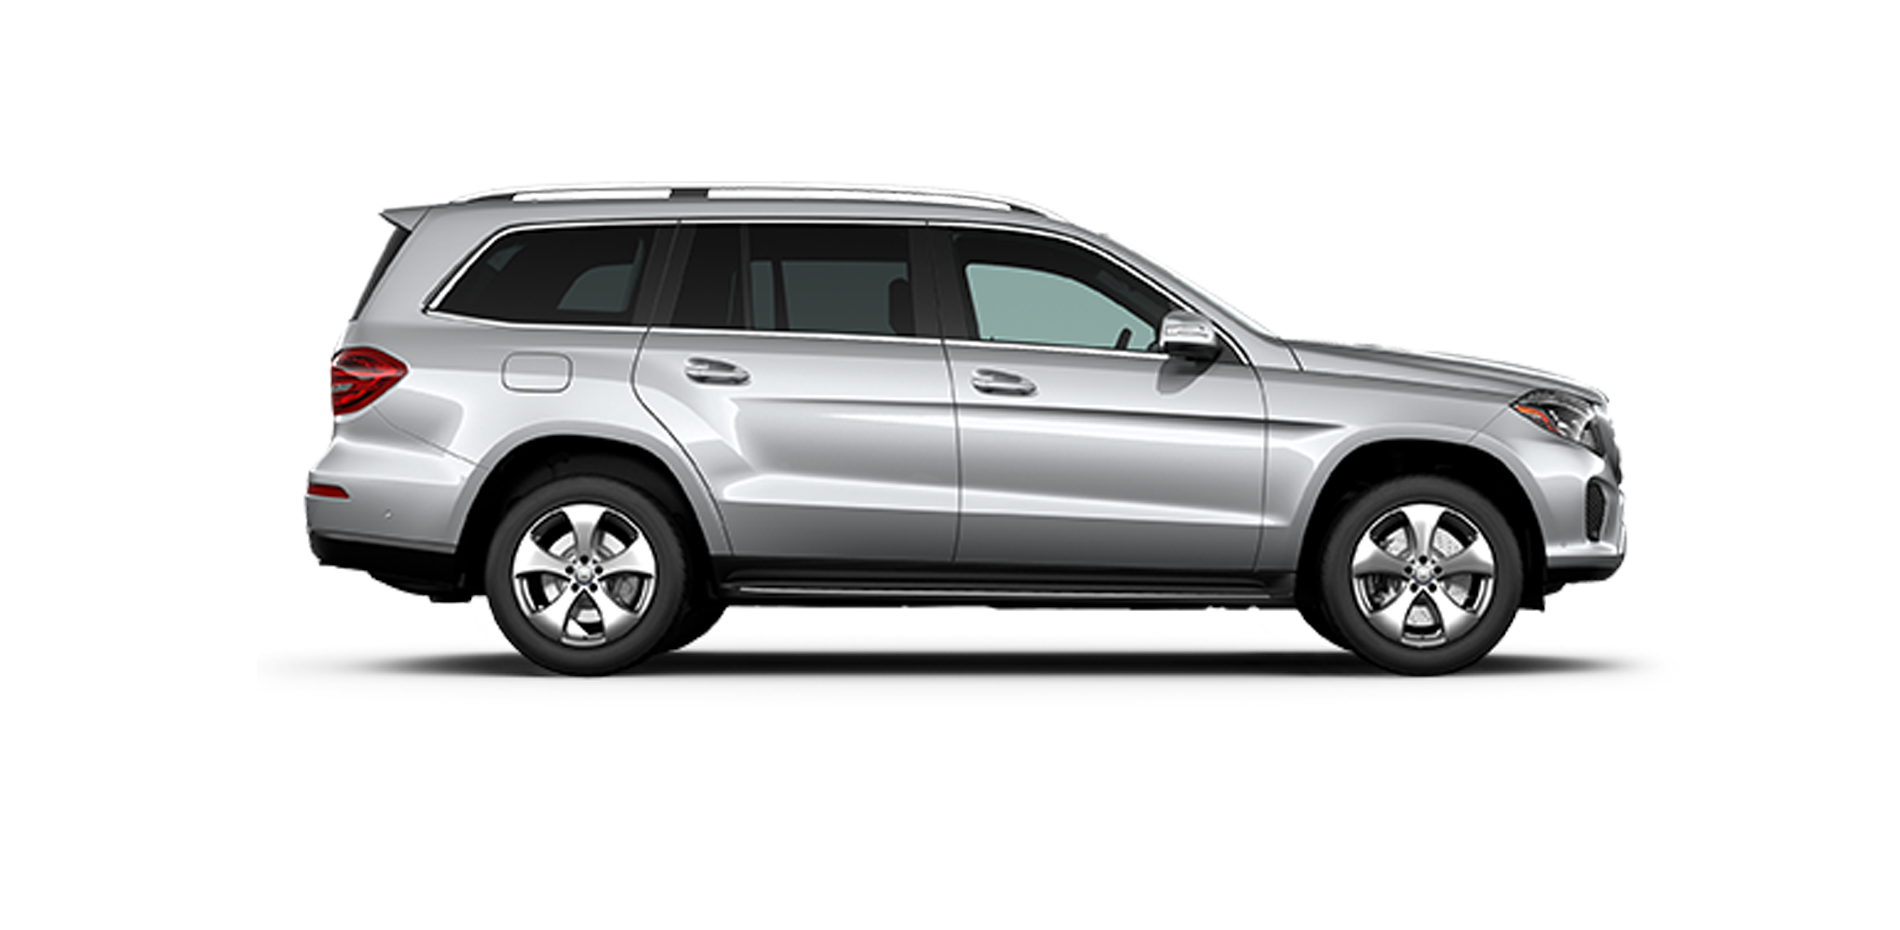 Certified Pre-Owned GL-Class